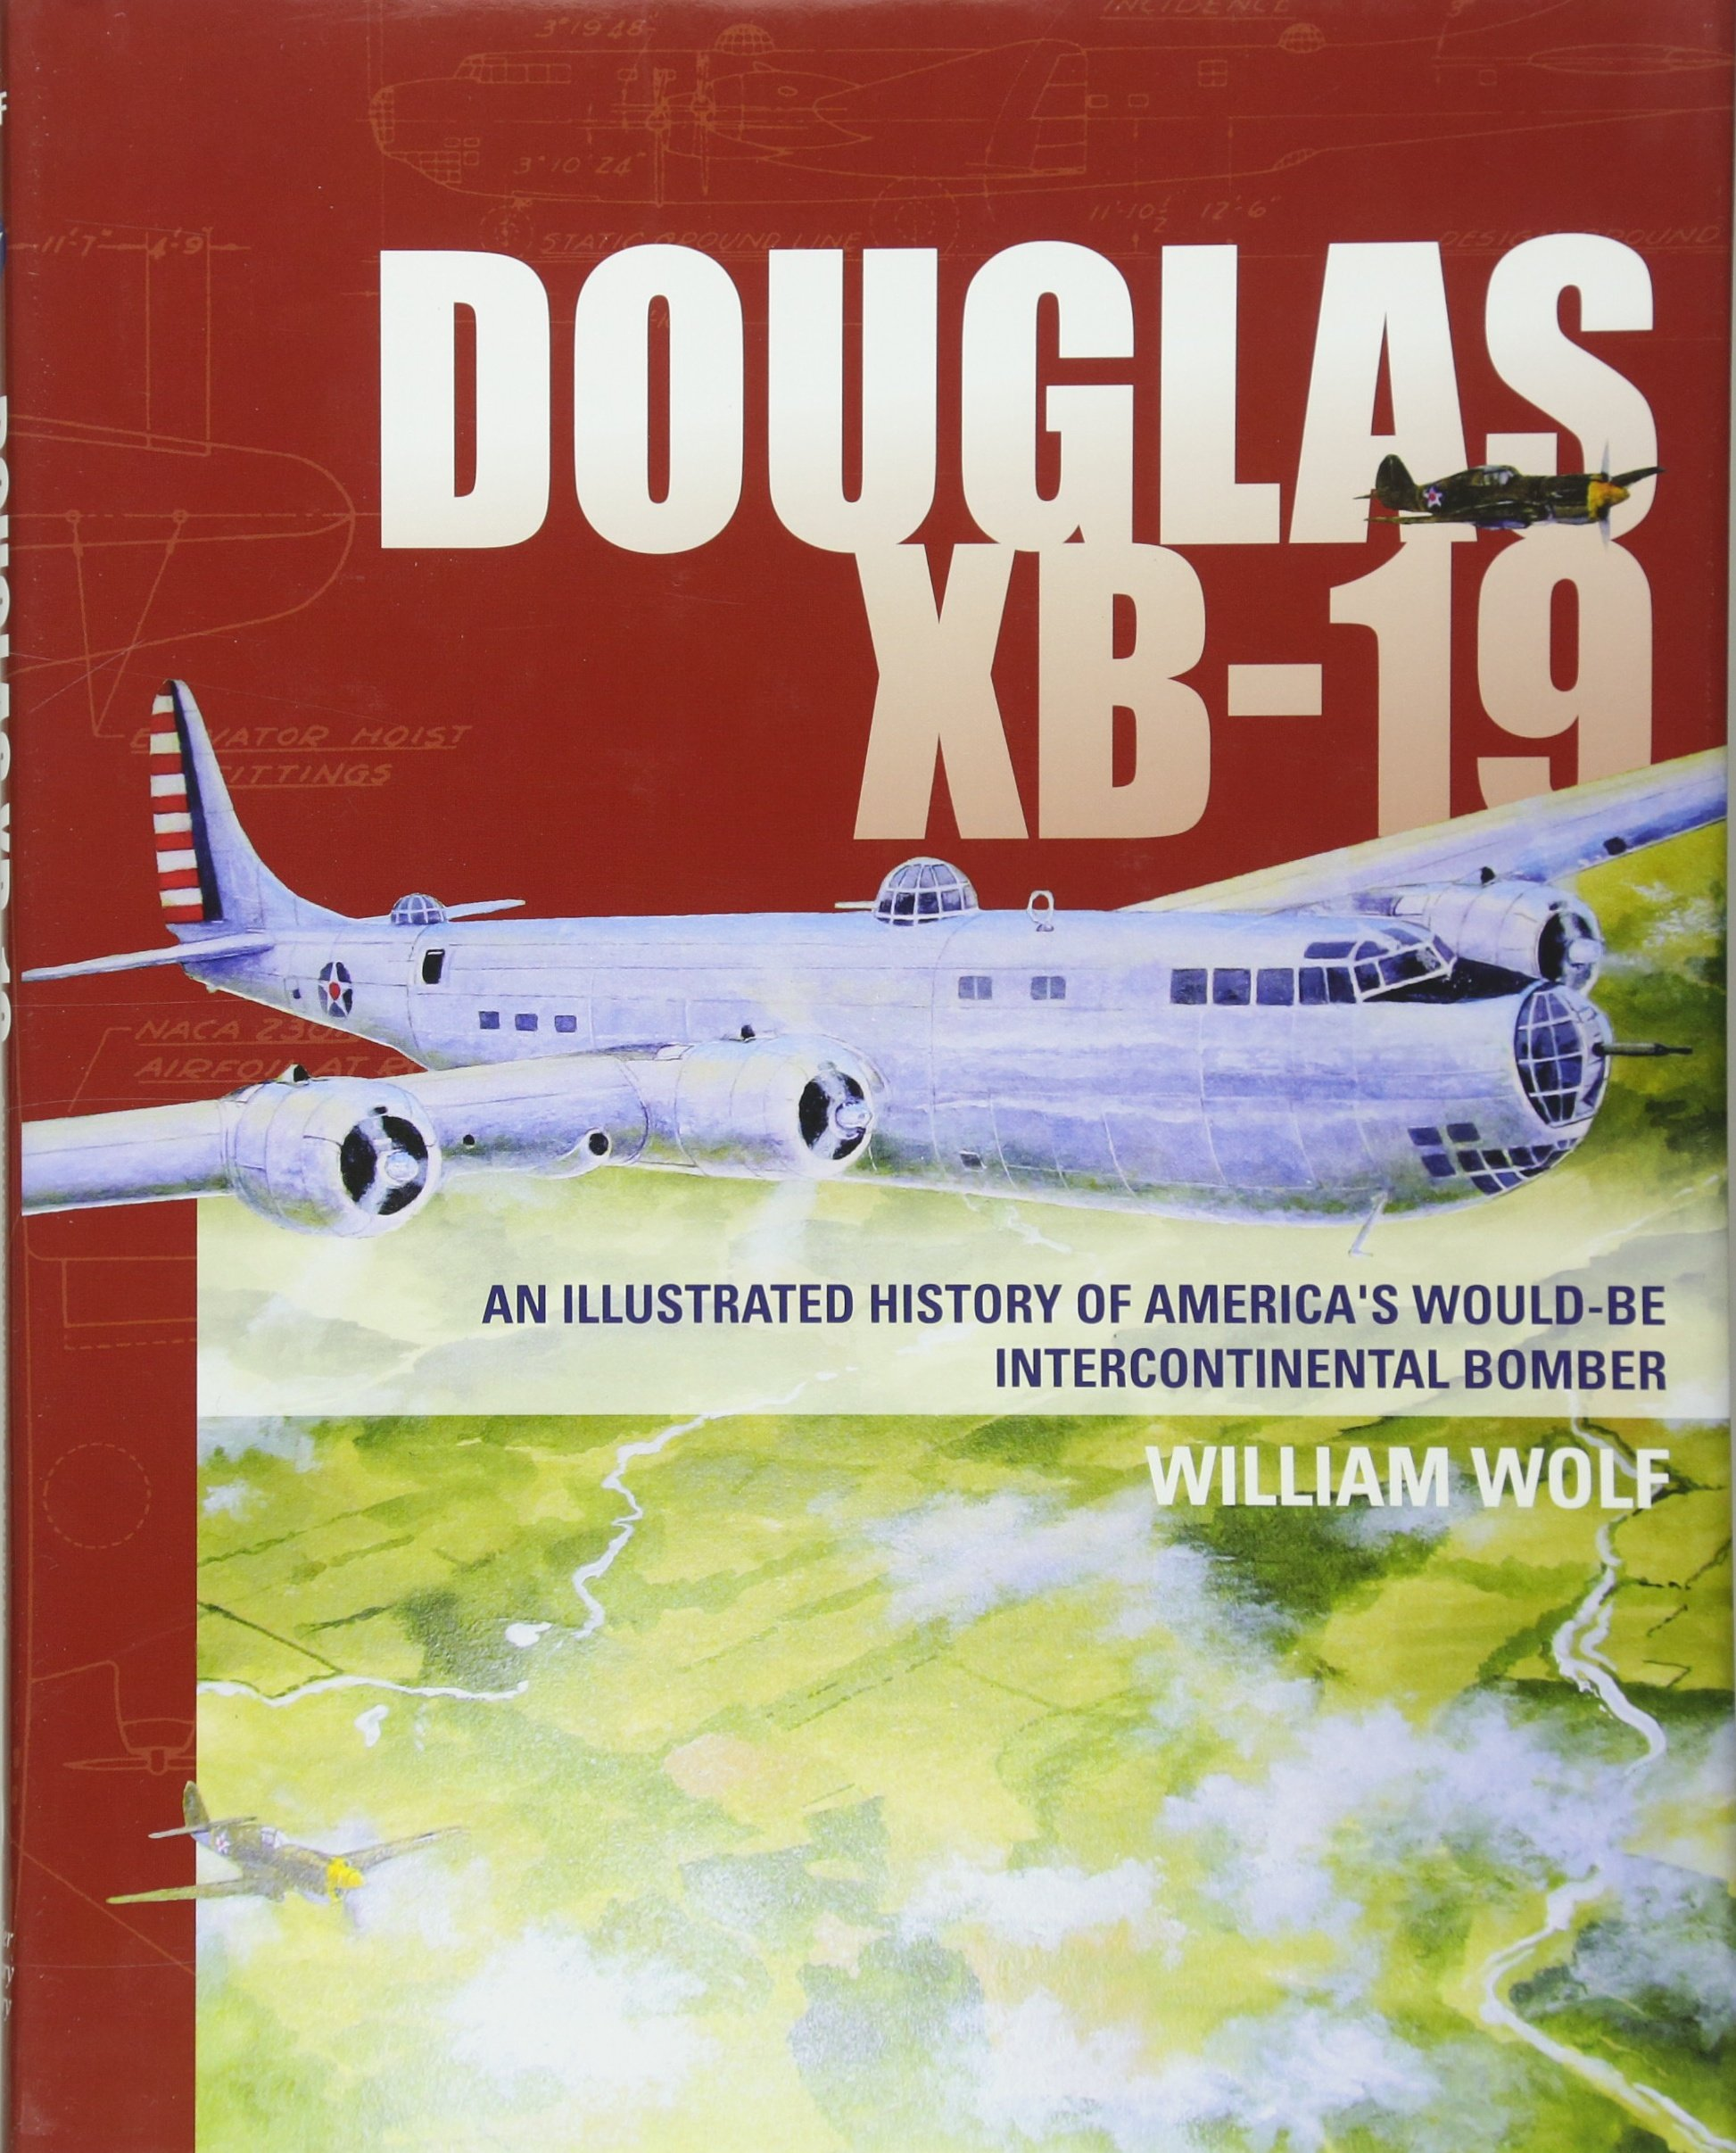 Douglas XB-19: An Illustrated History of America's Would-Be  Intercontinental Bomber: William Wolf: 9780764352324: Amazon.com: Books